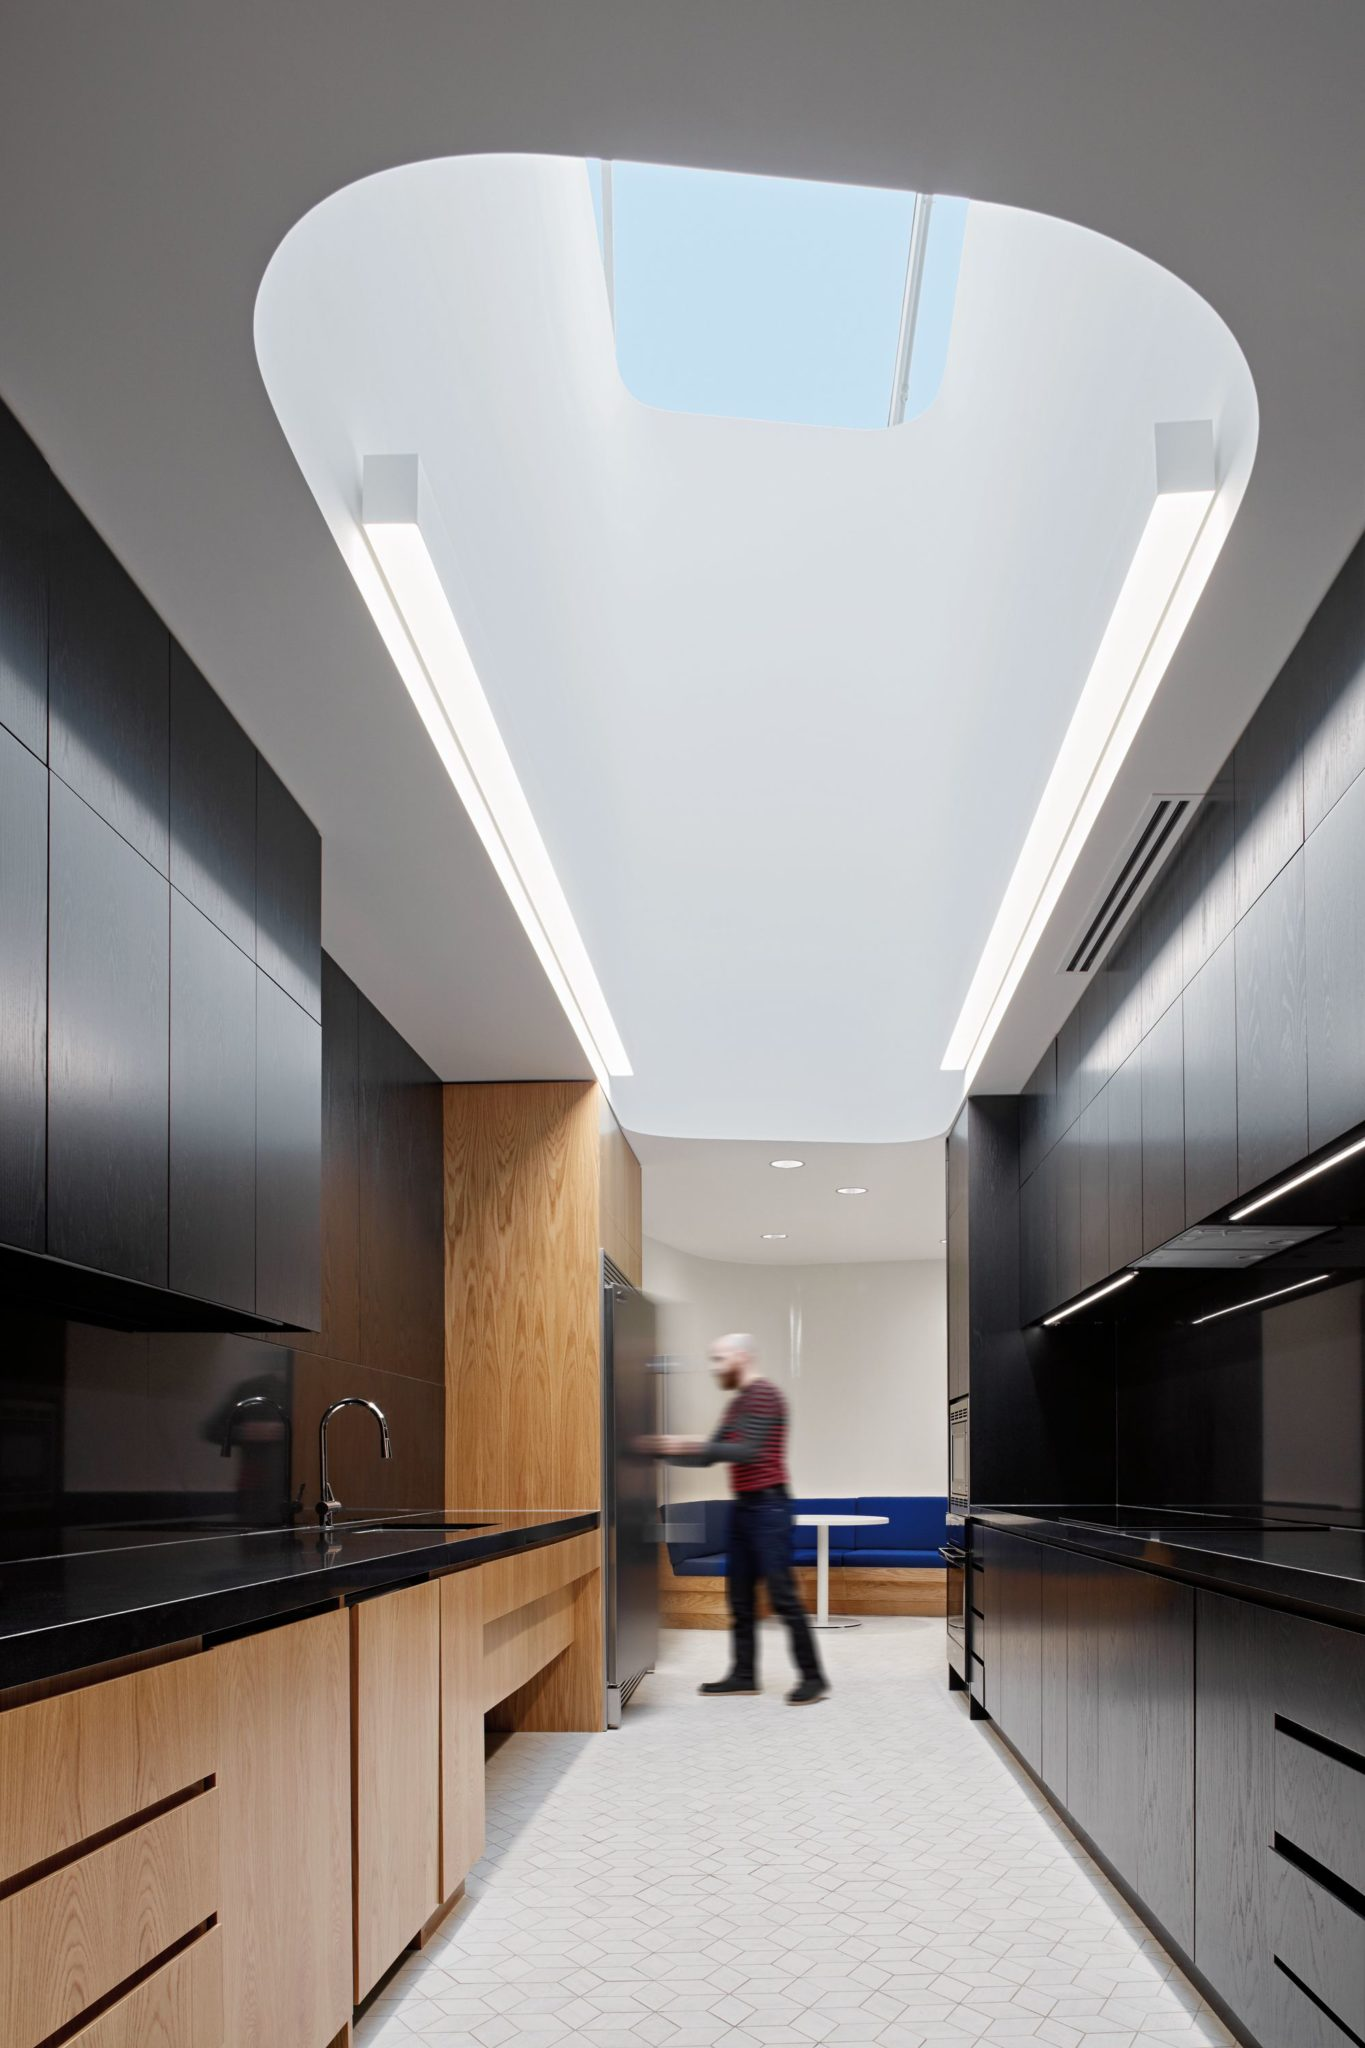 Office kitchen with ceiling inspired by the ice rink